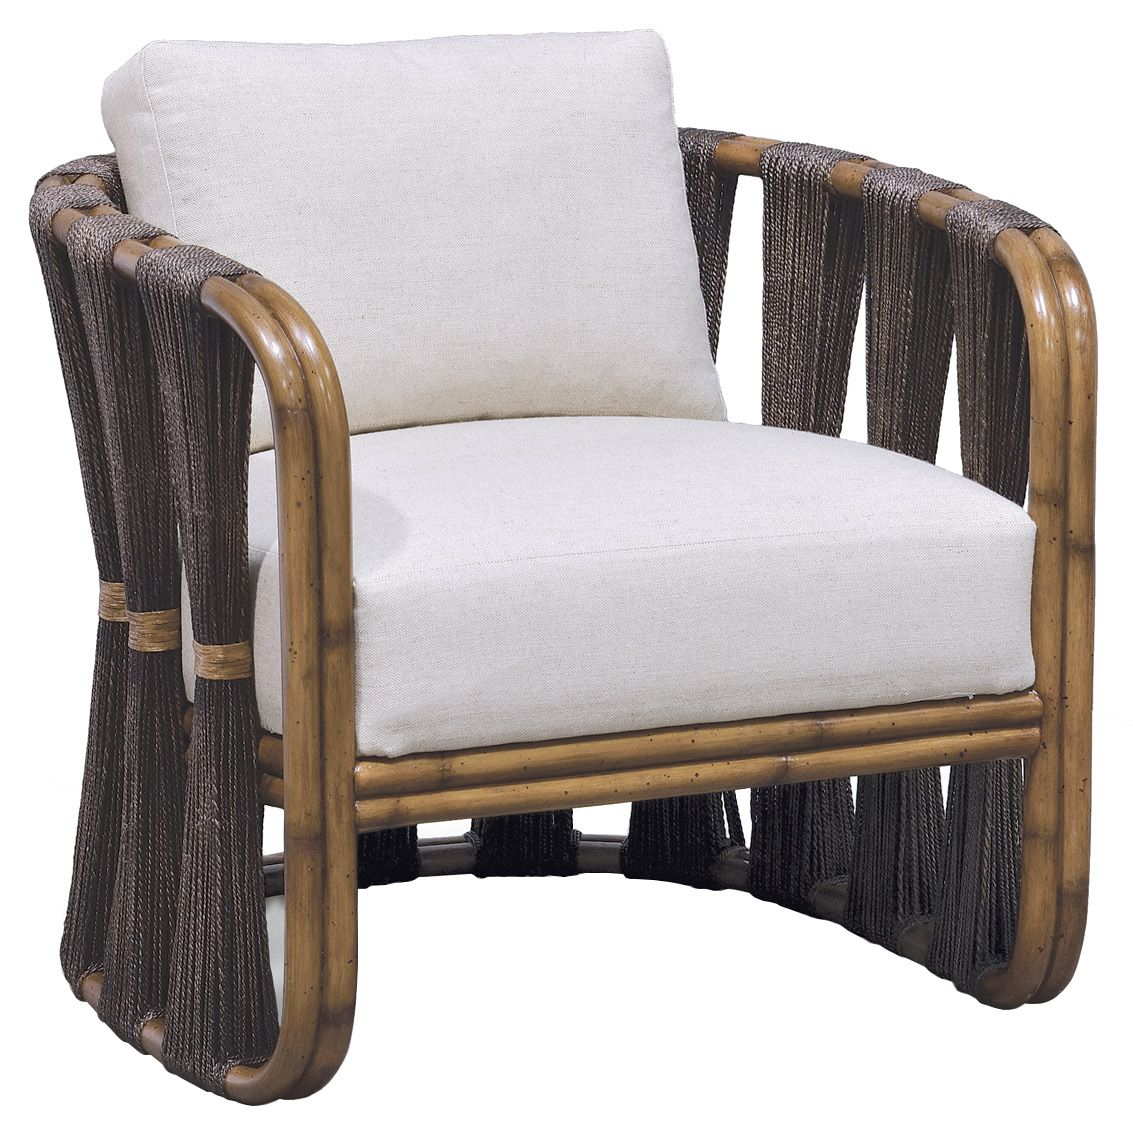 Hallway Chairs, Furniture Chairs, Home Furniture, Accent Chairs, Lounge  Chairs, Beach Houses, Outdoor Sectional, Rattan, Brown Finish